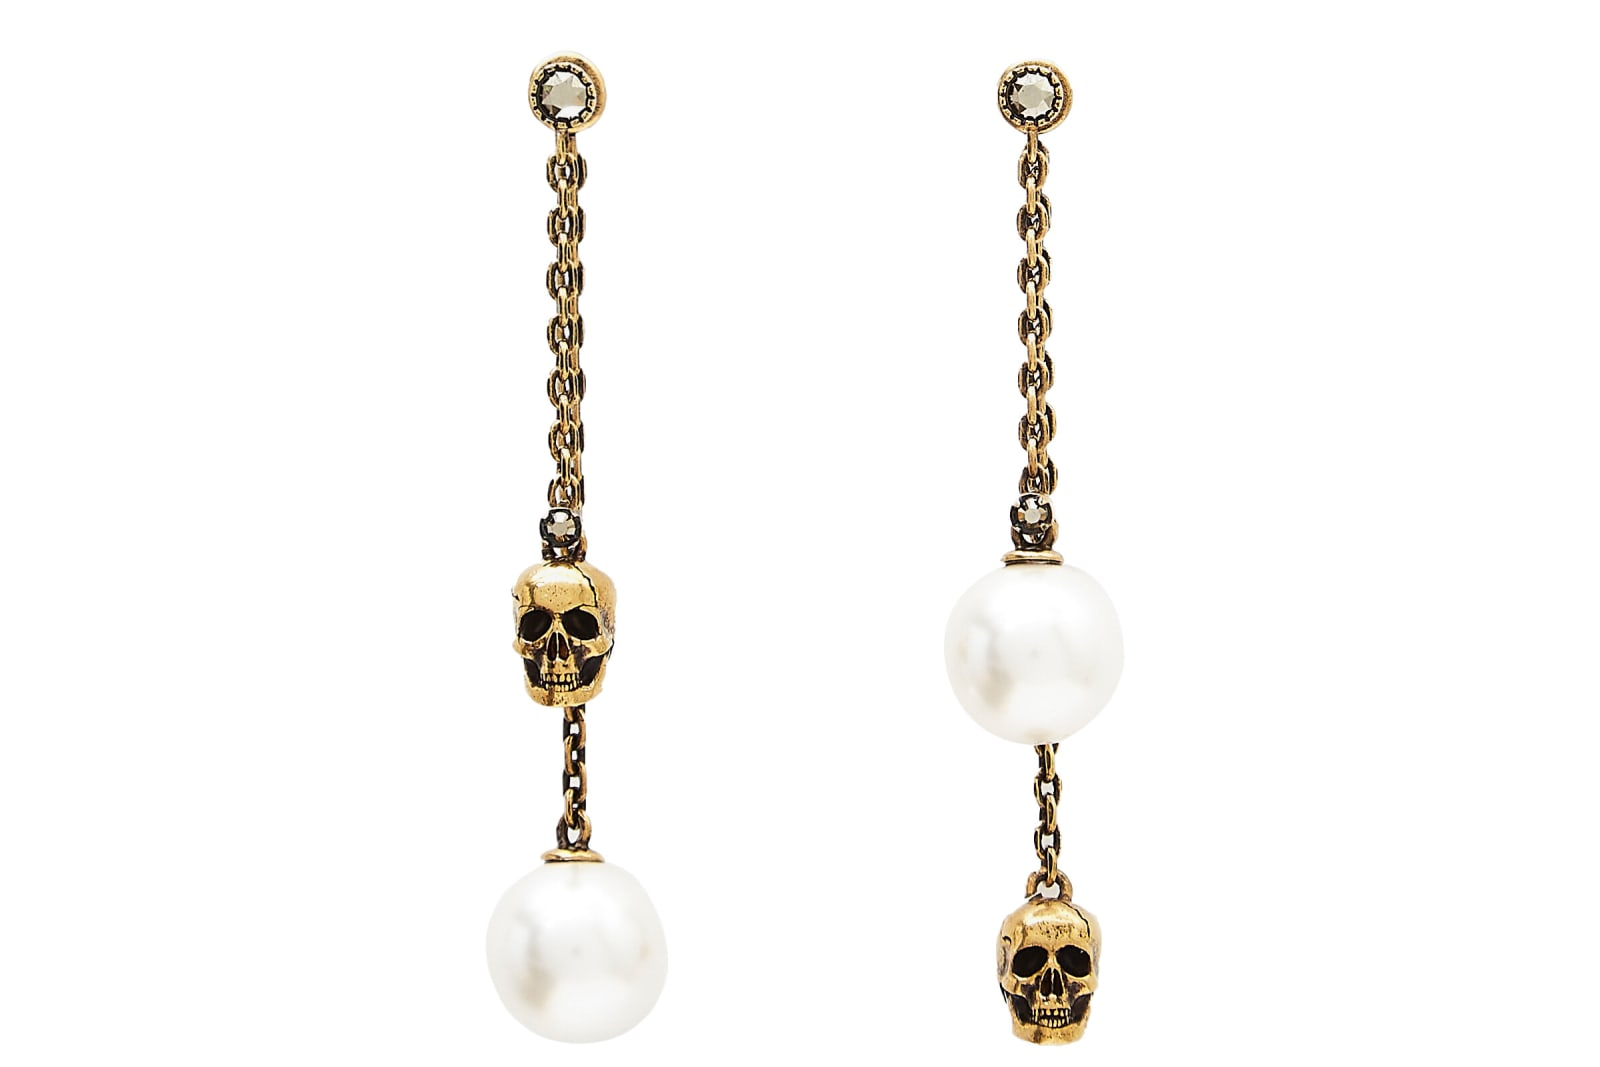 Alexander Mcqueen ALEXANDER MCQUEEN PEARLY SKULL EARRINGS